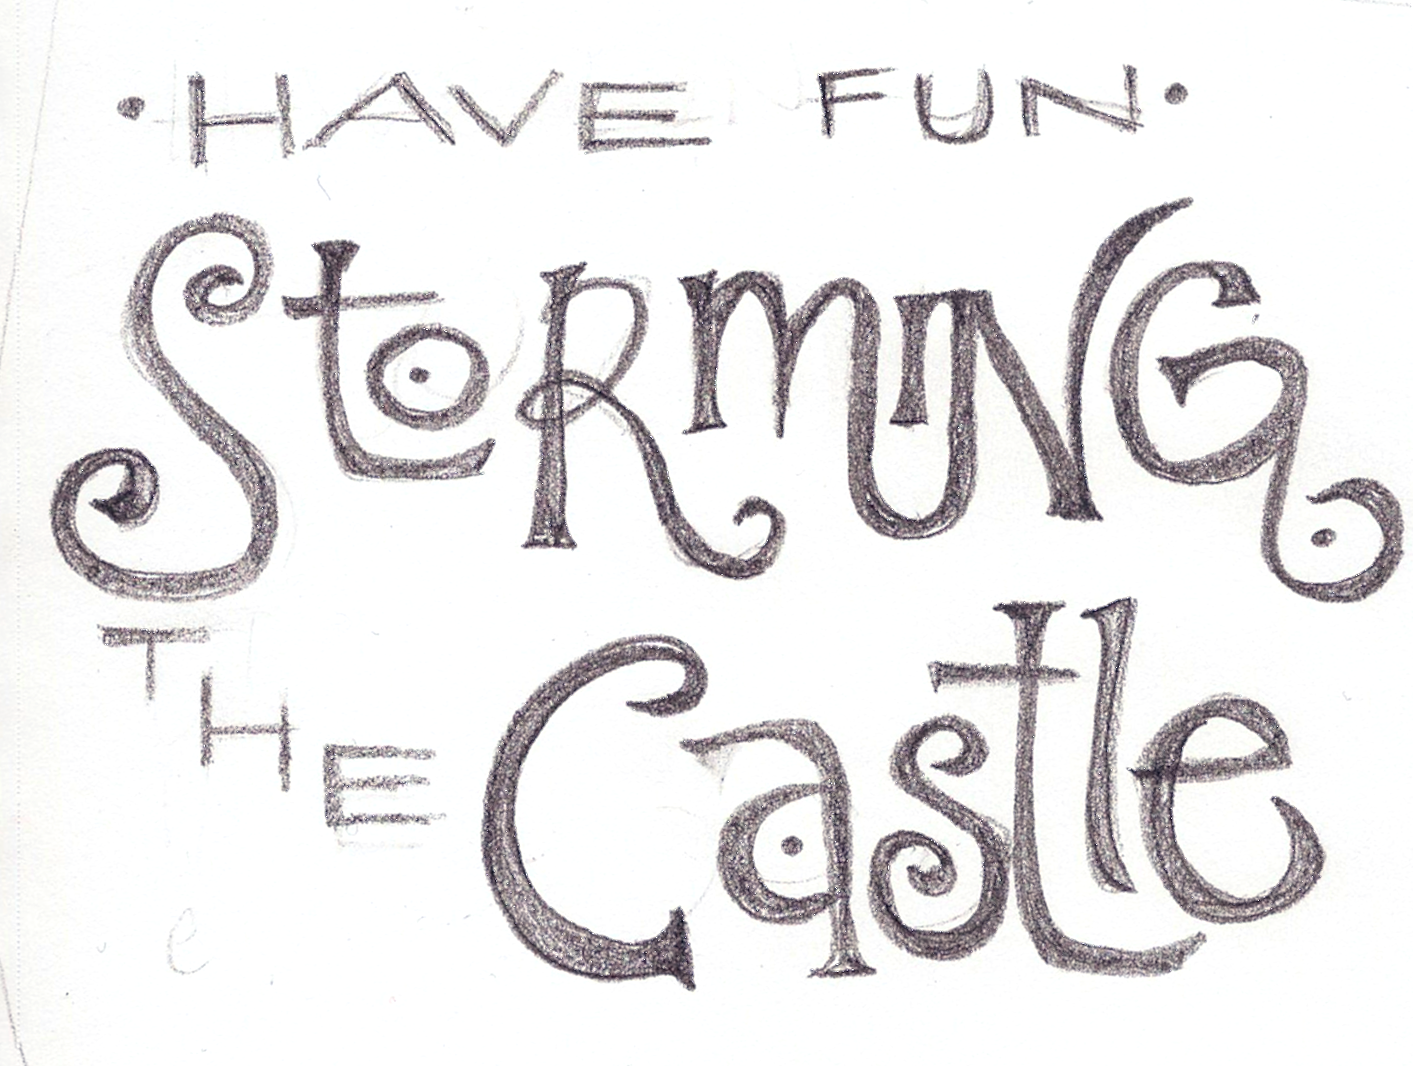 Have fun storming the castle - w/FINAL art! Feedback welcome!! - image 1 - student project